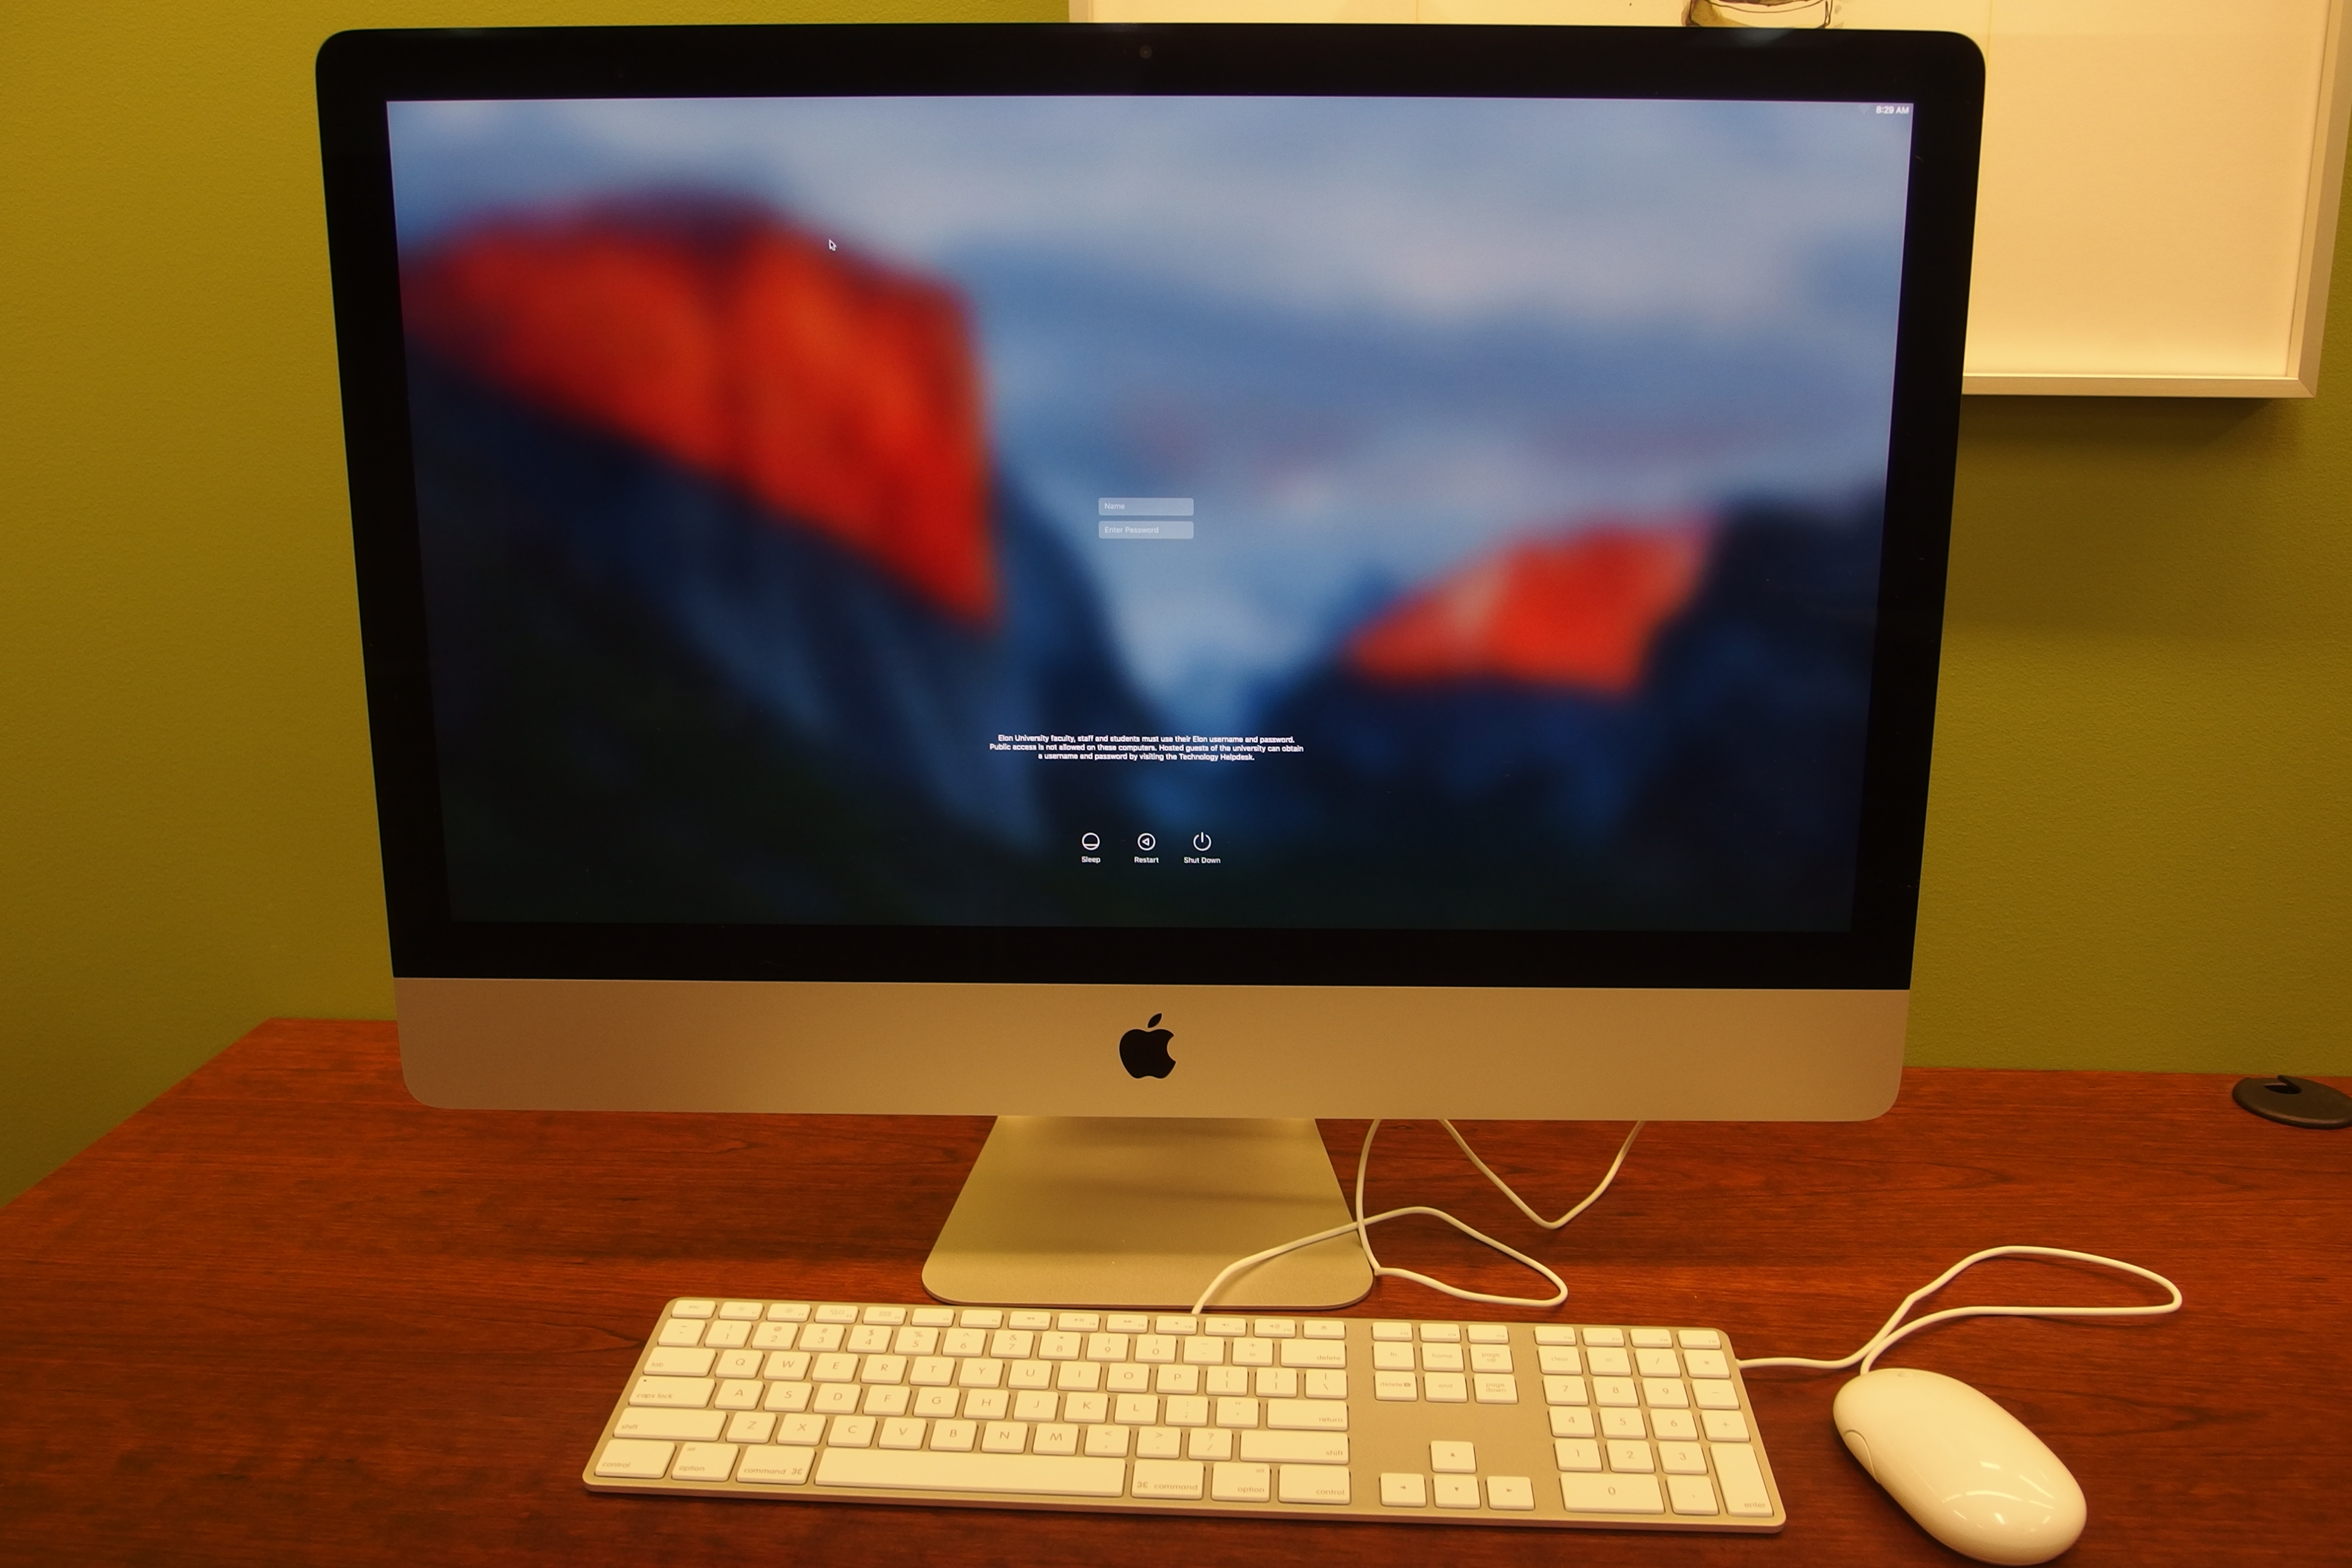 A photo of a Mac computer work station